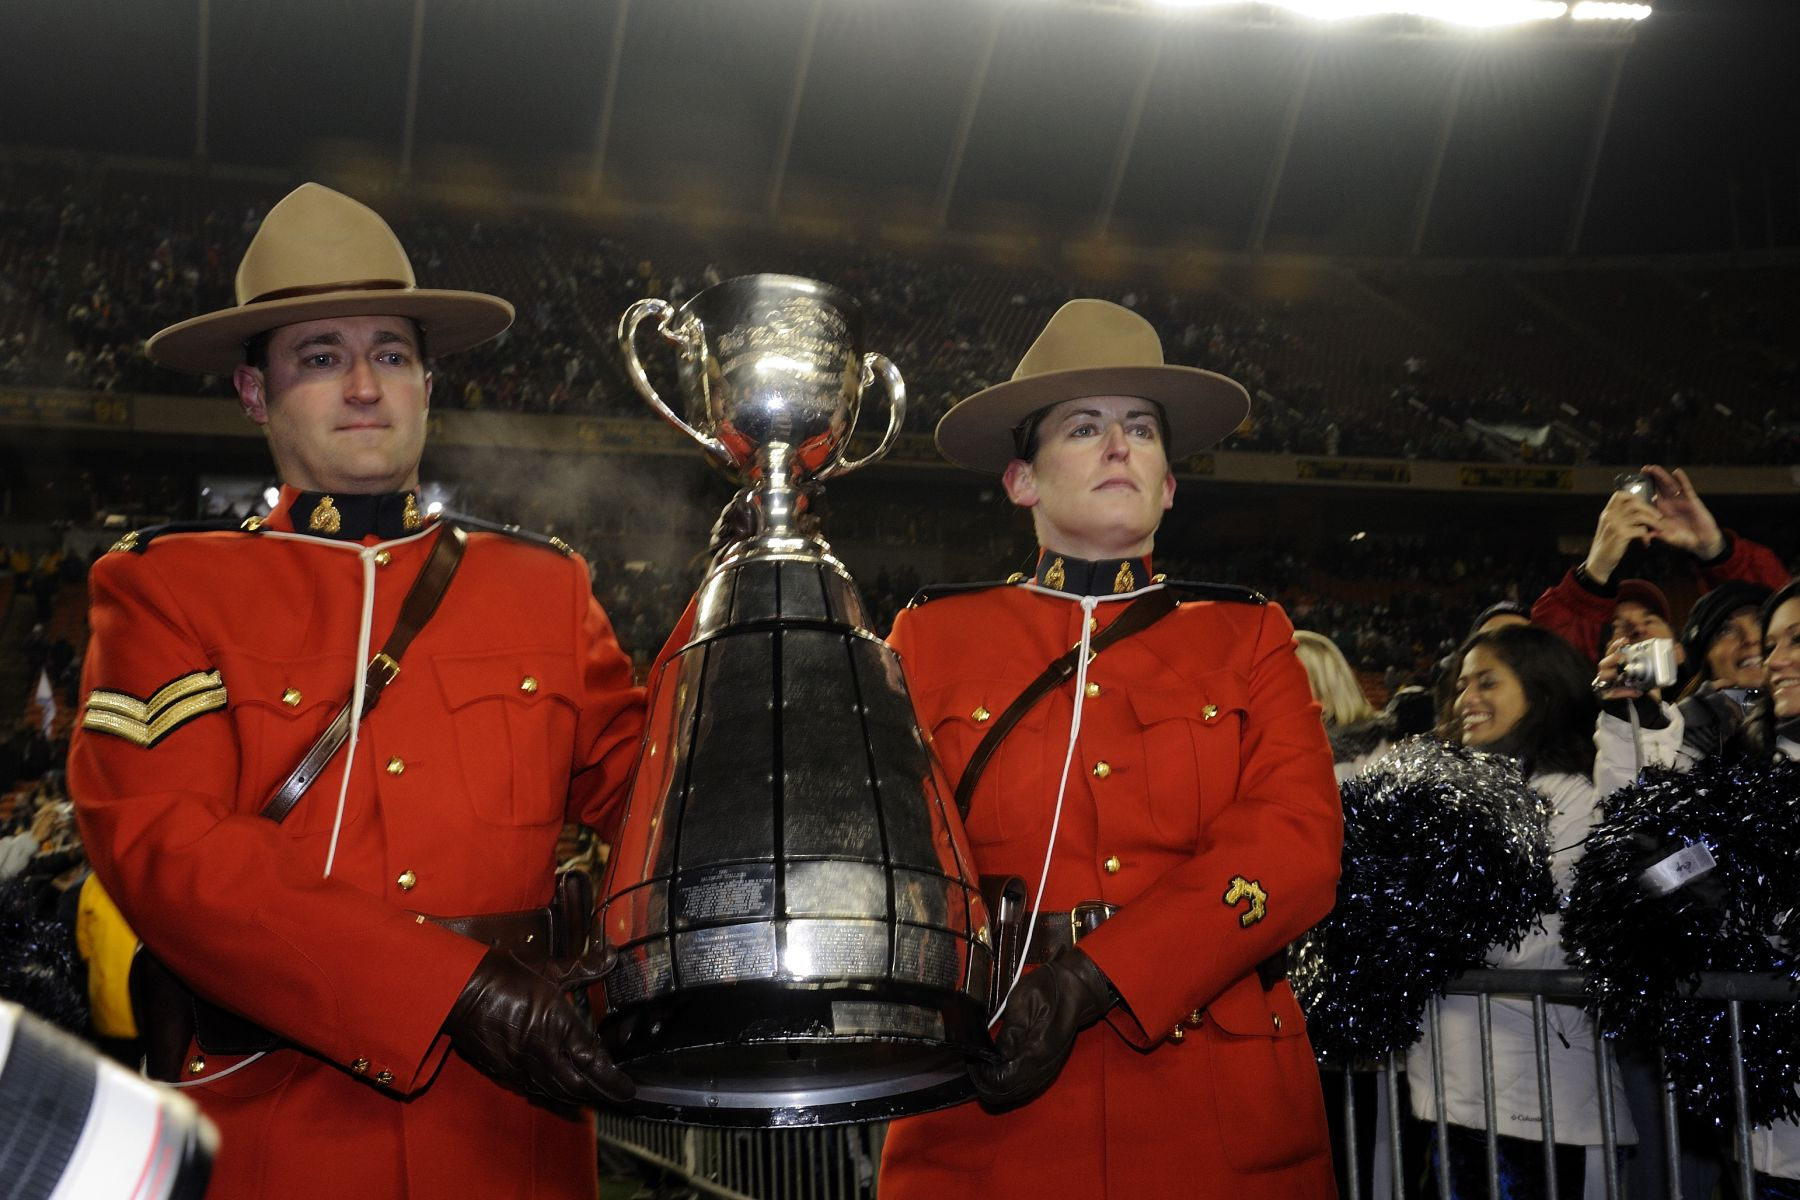 The trophy was carried by two RCMP officers. In 1909, Governor General Earl Grey donated a trophy for the Rugby Football Championship of Canada. The trophy, which subsequently became known as the Grey Cup, was originally open only to teams that were registered with the Canada Rugby Union. Since 1954, only the teams of the CFL have participated in the challenge for the Grey Cup.